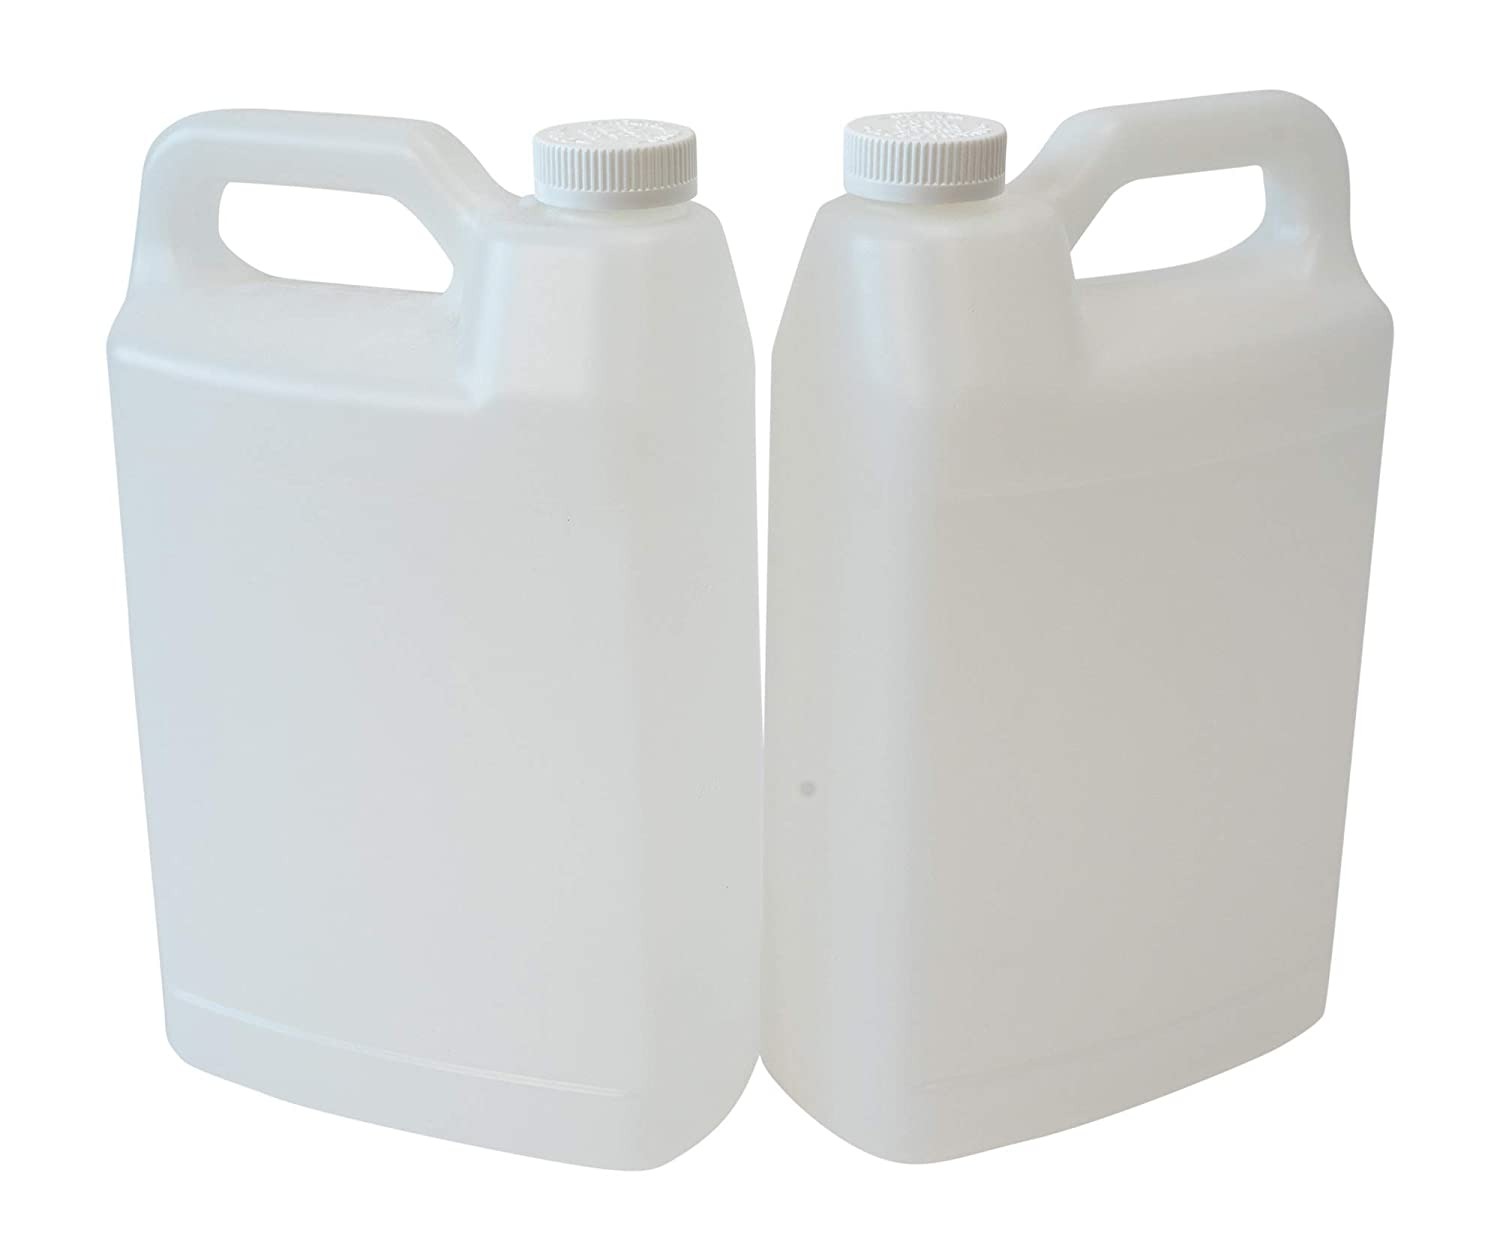 CSBD F-Style Clear Plastic Jug with Child Resistant Lid, 2 Pack, Storage Containers with Ergonomic Handle, HDPE Construction for Residential or Commercial Use, 1 Gallon